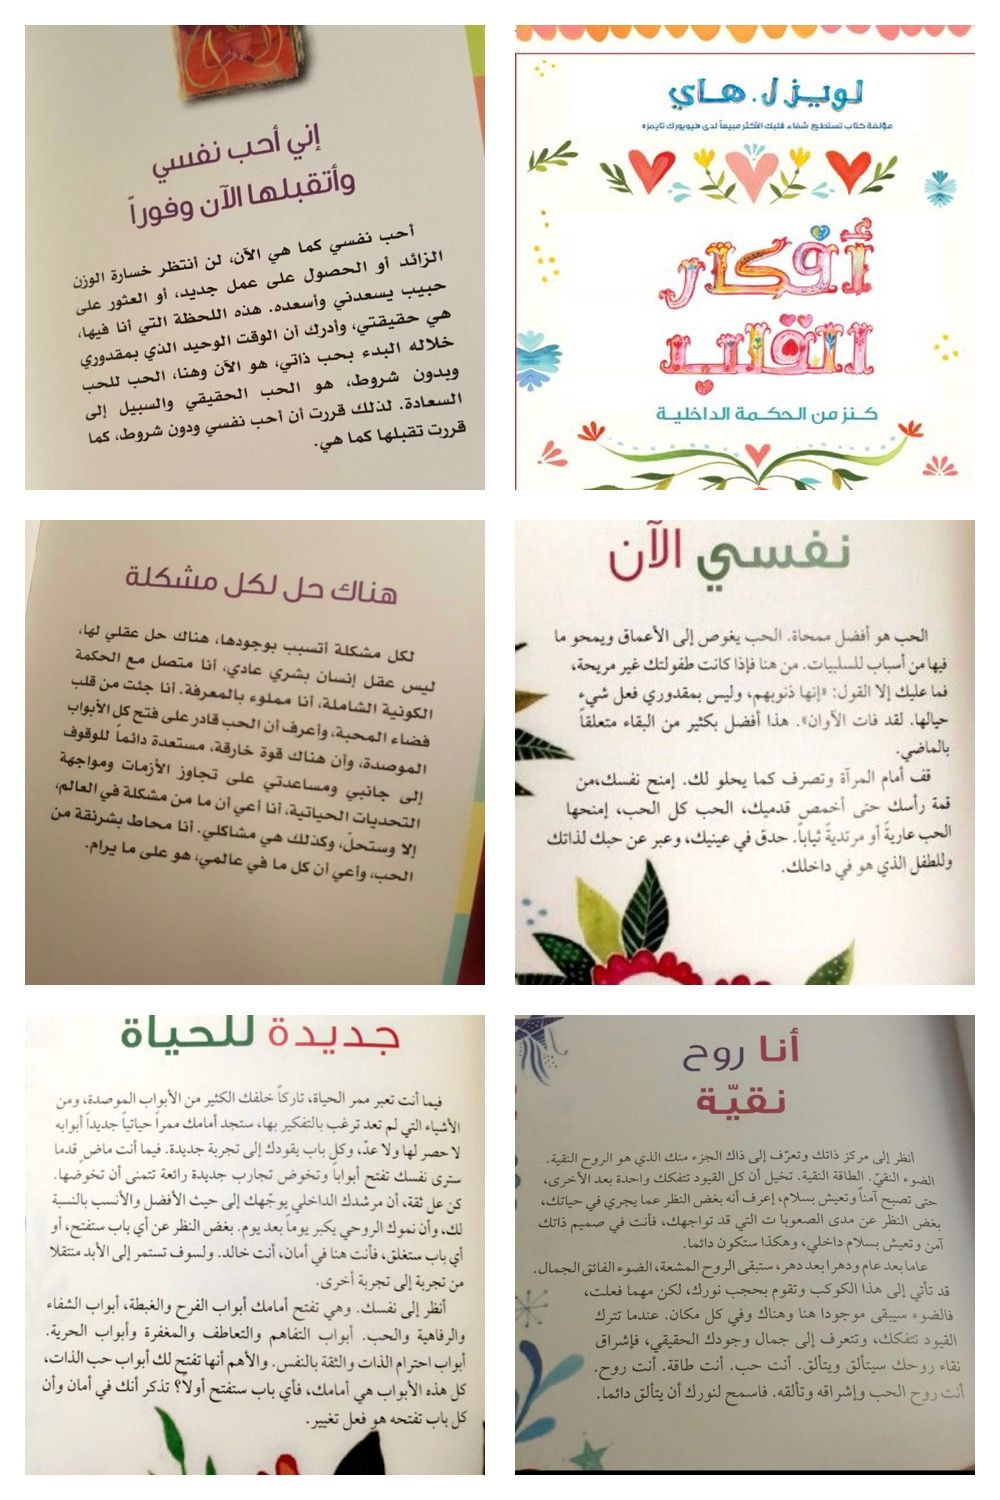 Pin By براءة حروف On كتب Books To Read Book Lovers My Books